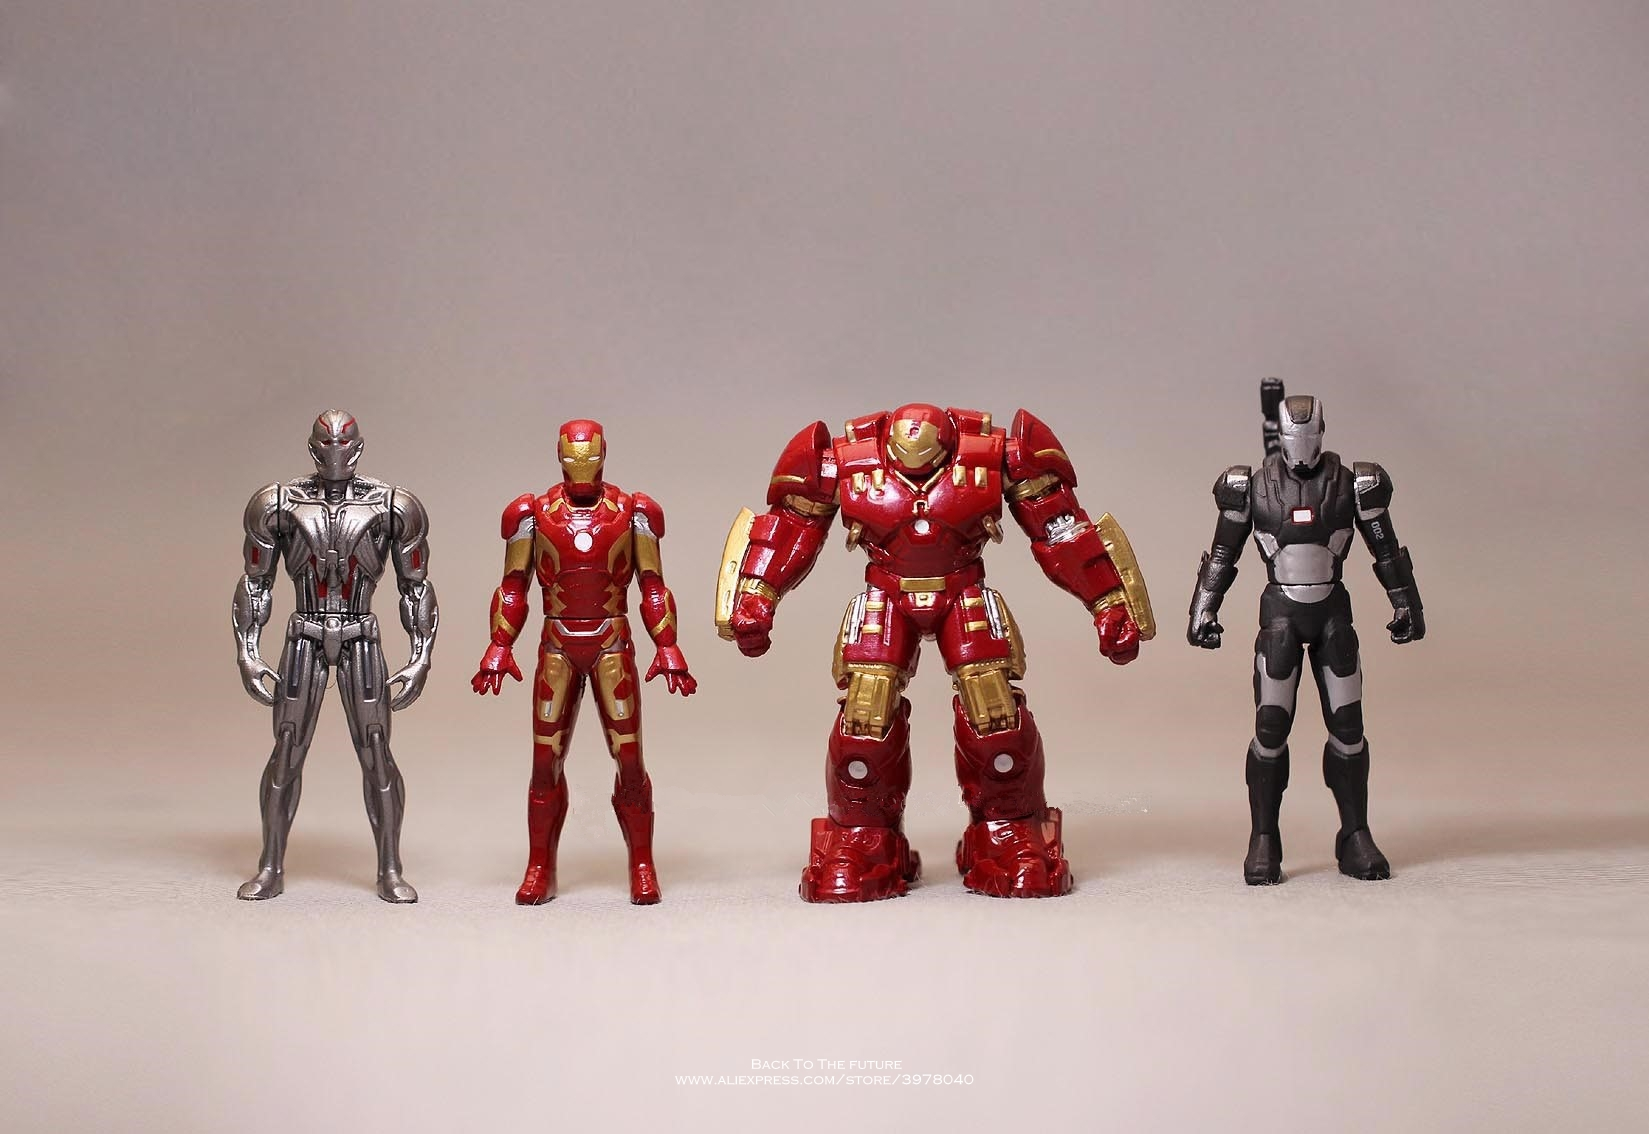 Disney Marvel Avengers Iron Man 3 Ultron 5-6cm metal Action Figure Anime Mini Decoration PVC Collection Figurine Toy model gift цена